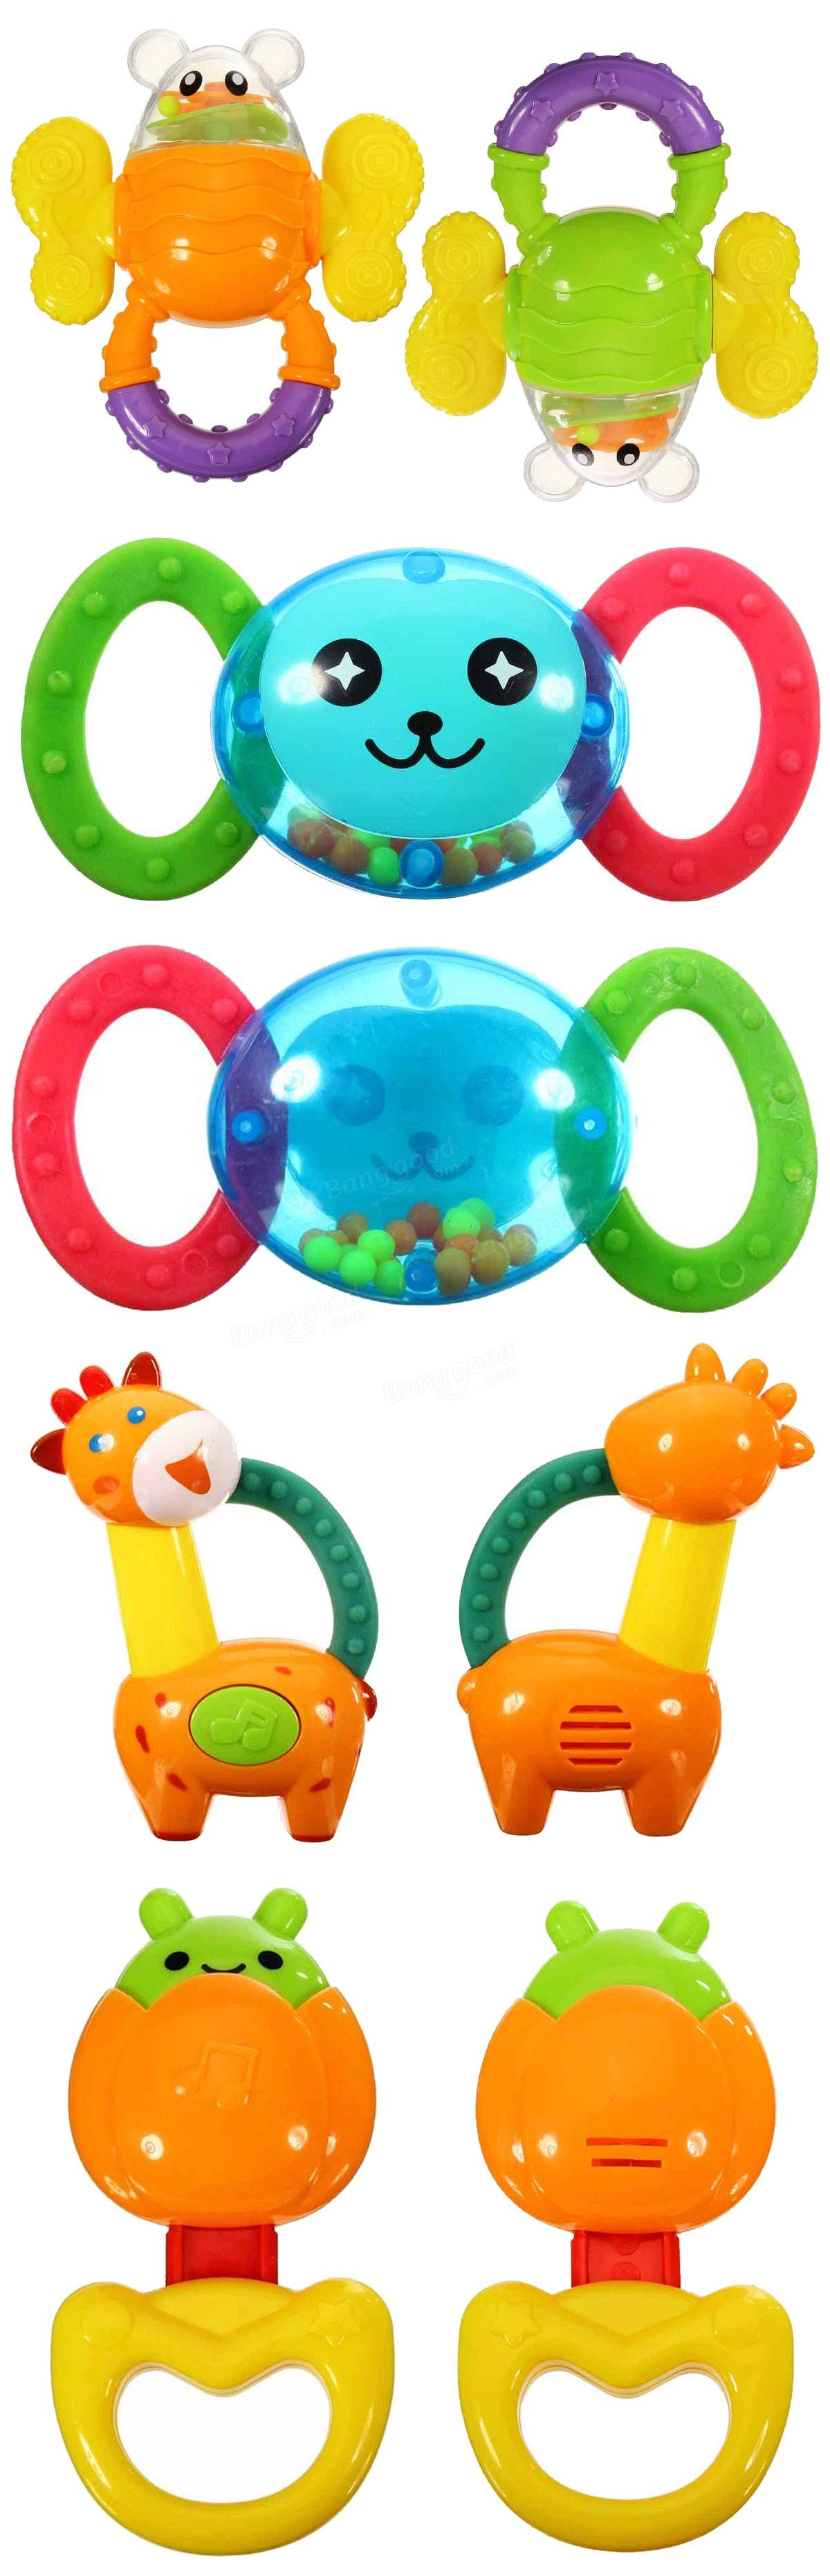 Plastic Baby Toddler Teether Chew Training Educational Development Animal Handbell Moral Toy Games